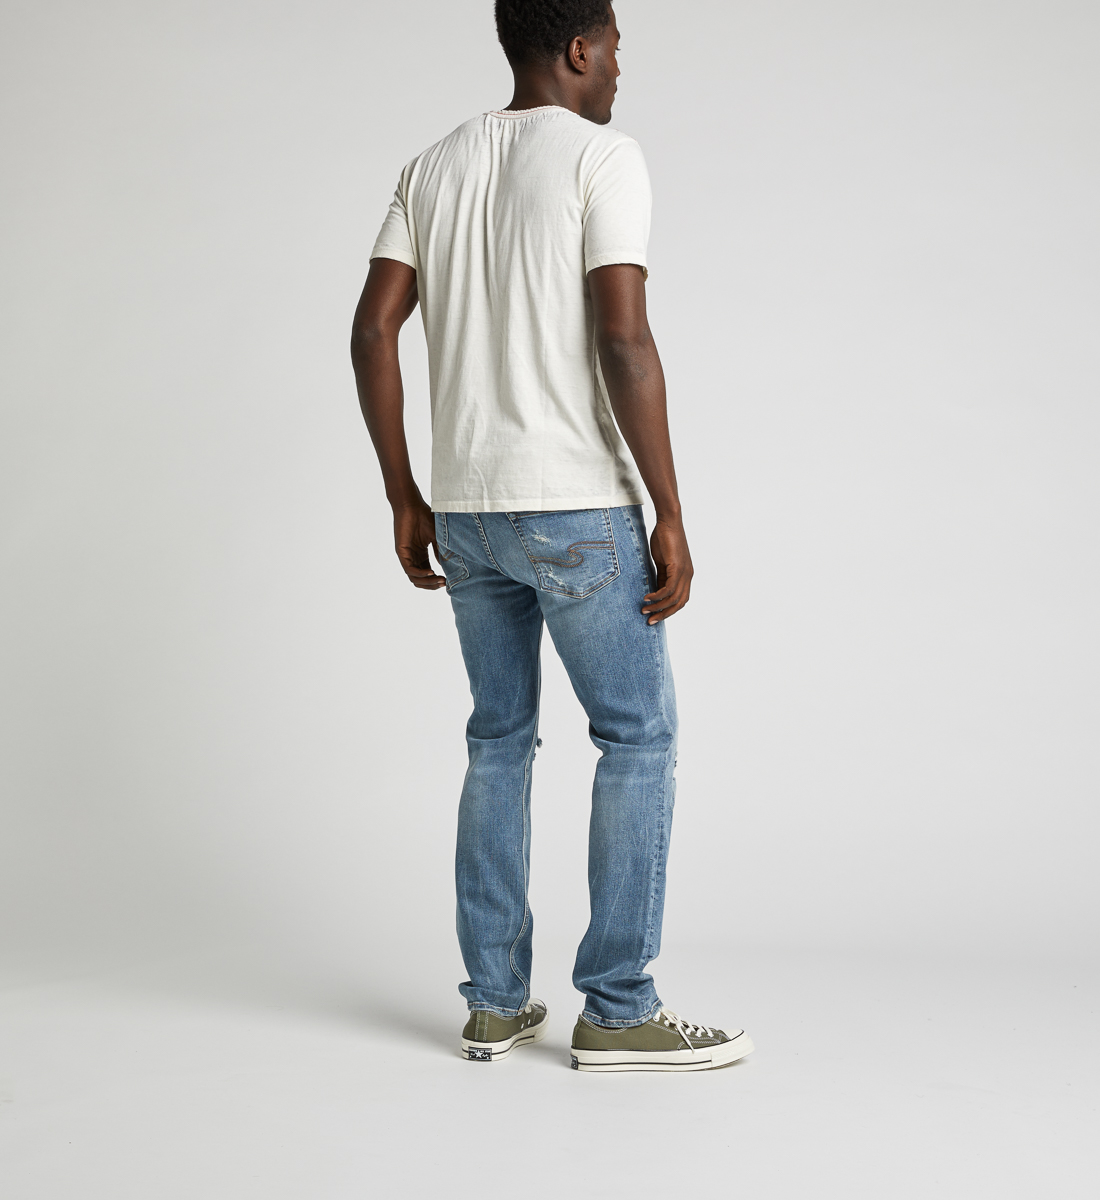 Kaleo Henley Tee,Warm White Side